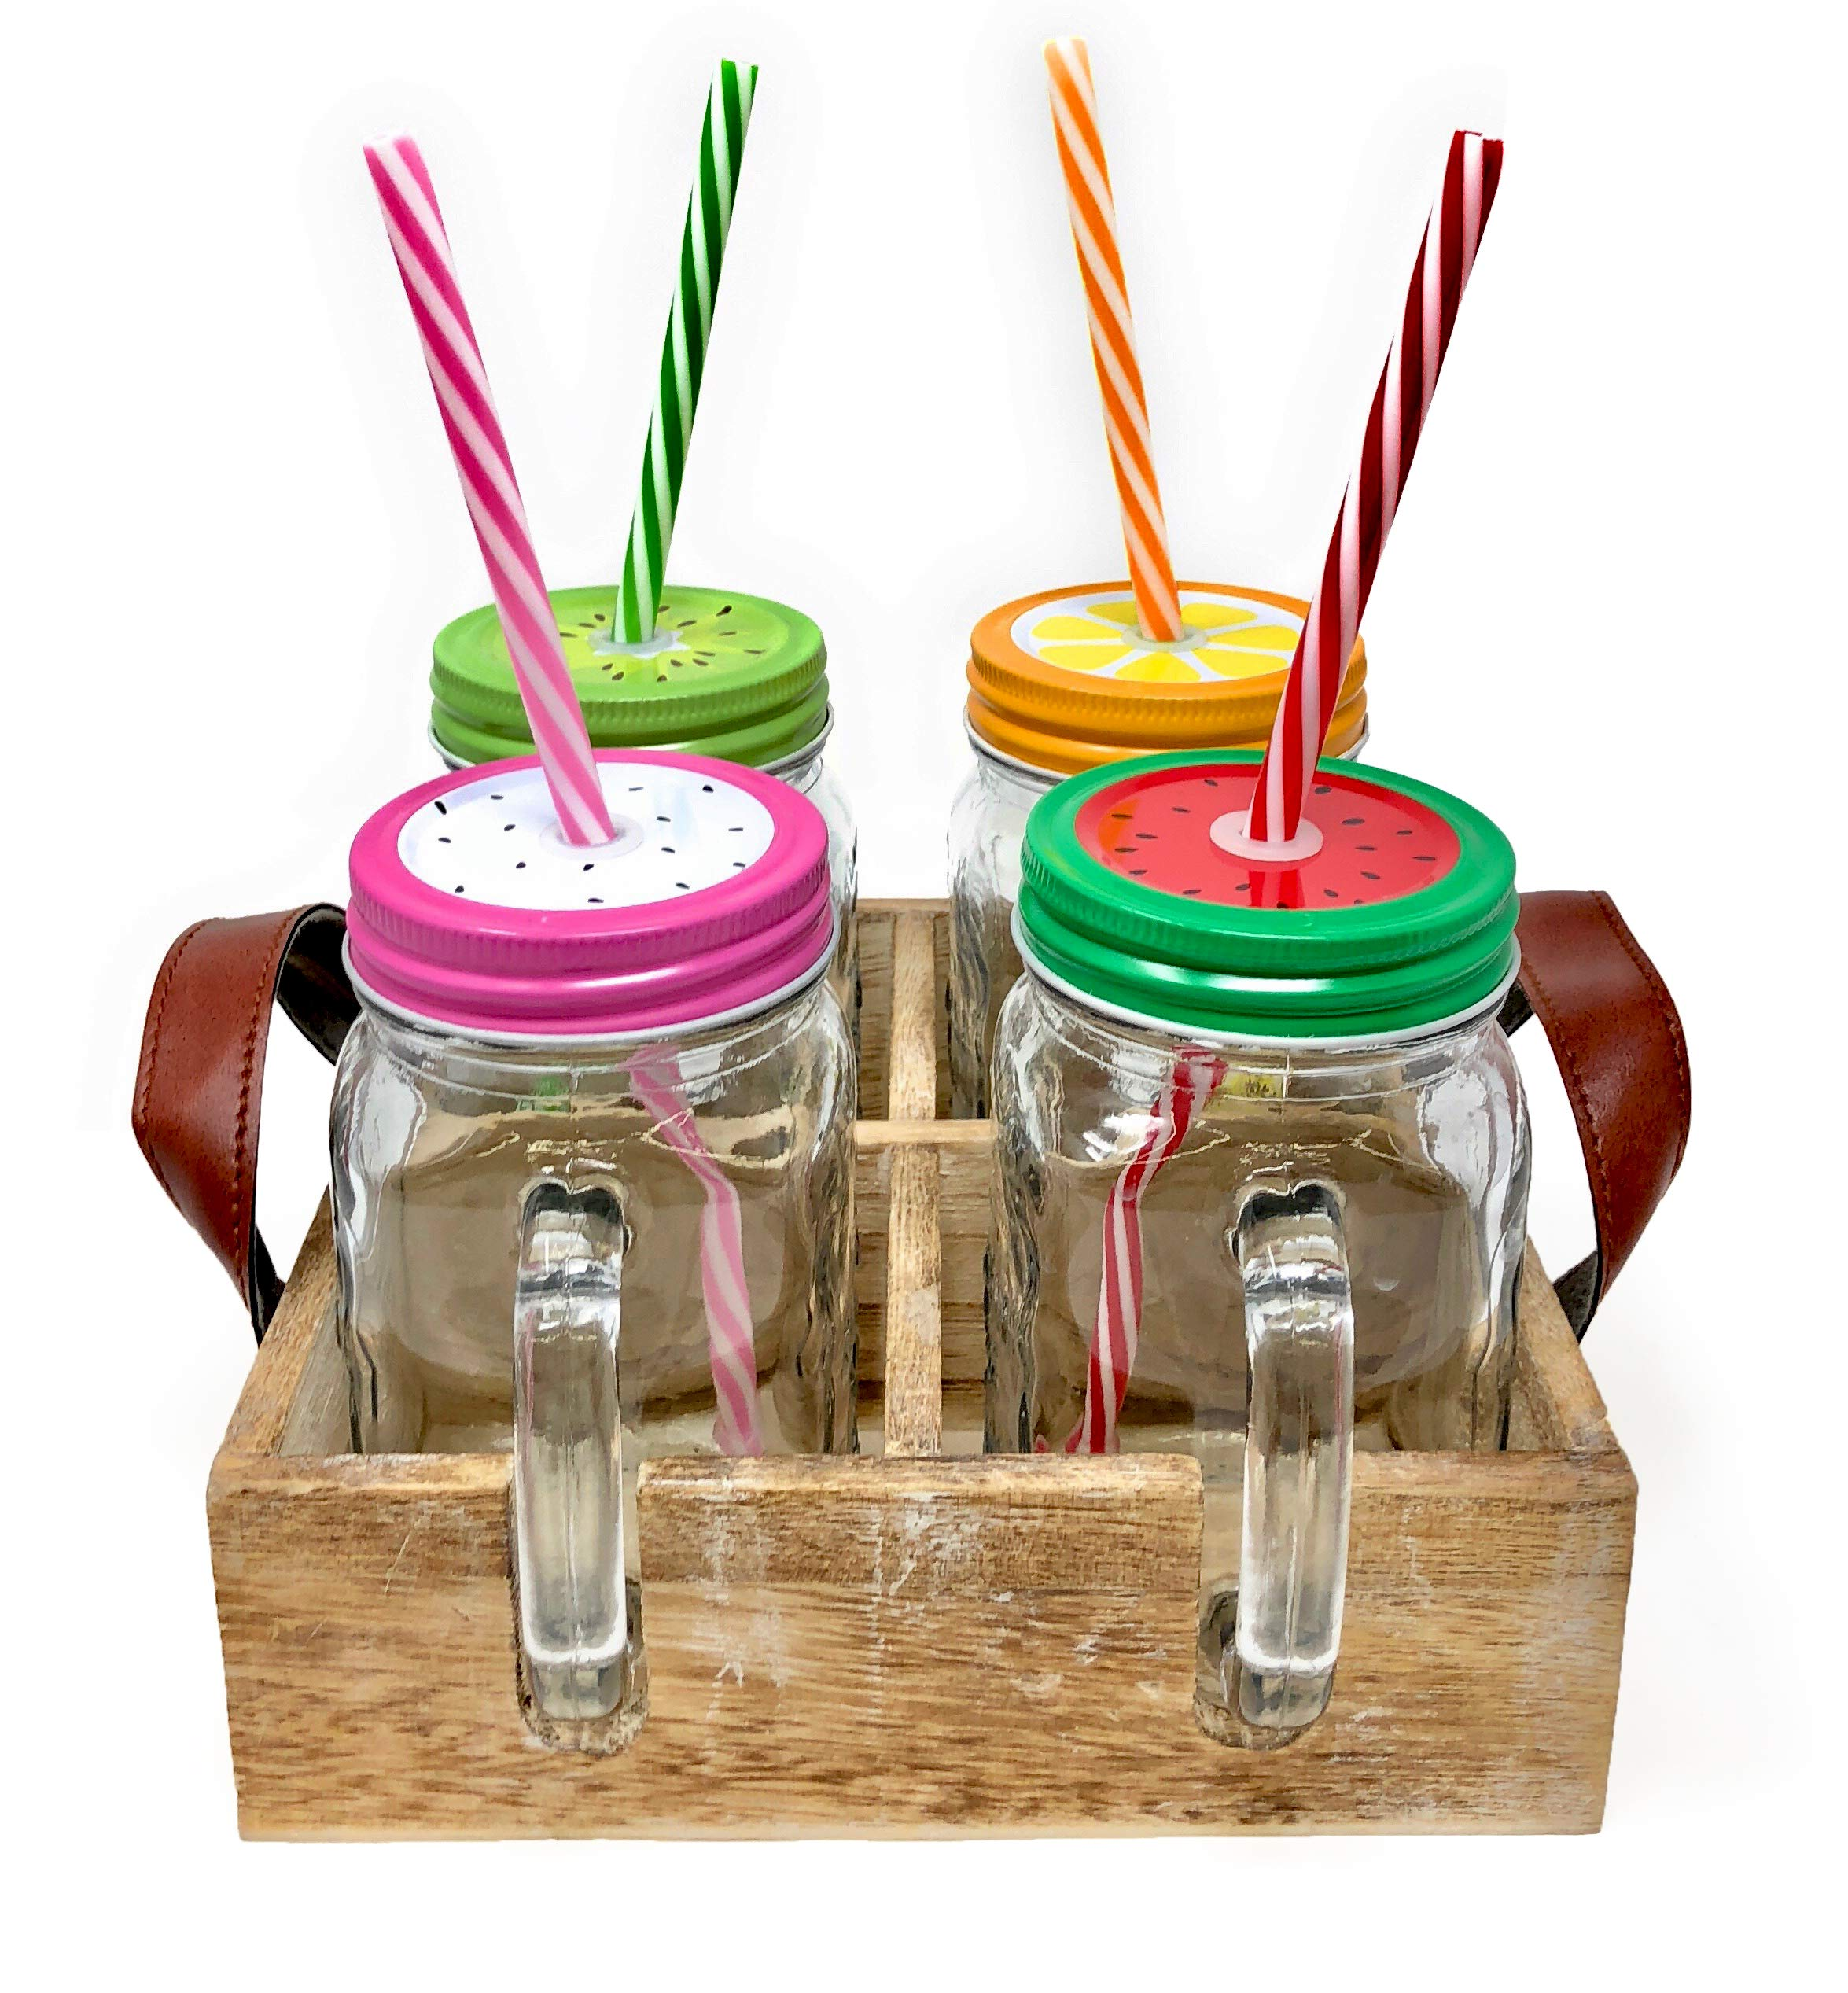 TheBarsentials Mason Jar Mugs with Handles with Stainless Steel Lids and Reusable Straws, Set of 4 x 16oz Clear Glass Pint, Old Fashioned Drinking Cup in Rustic Wooden Tray